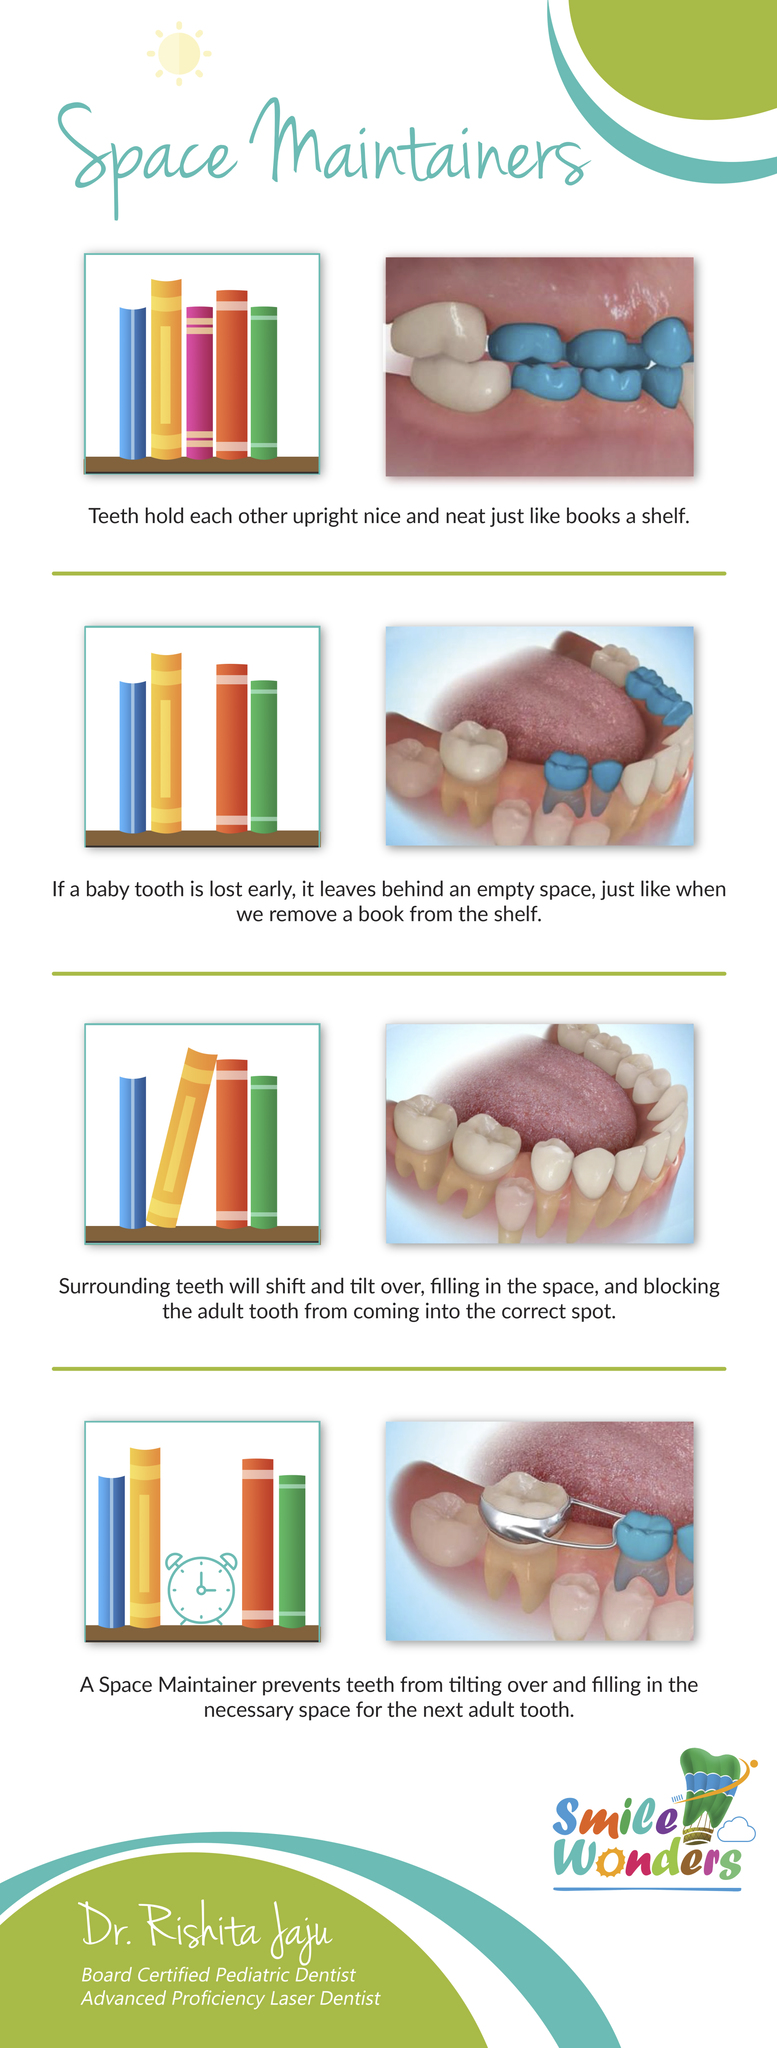 Pediatric dental services pediatric dentist reston va smile the permanent tooth comes in to fill it this appliance will help your childs bite develop properly and hopefully avoid the need for braces later on solutioingenieria Gallery